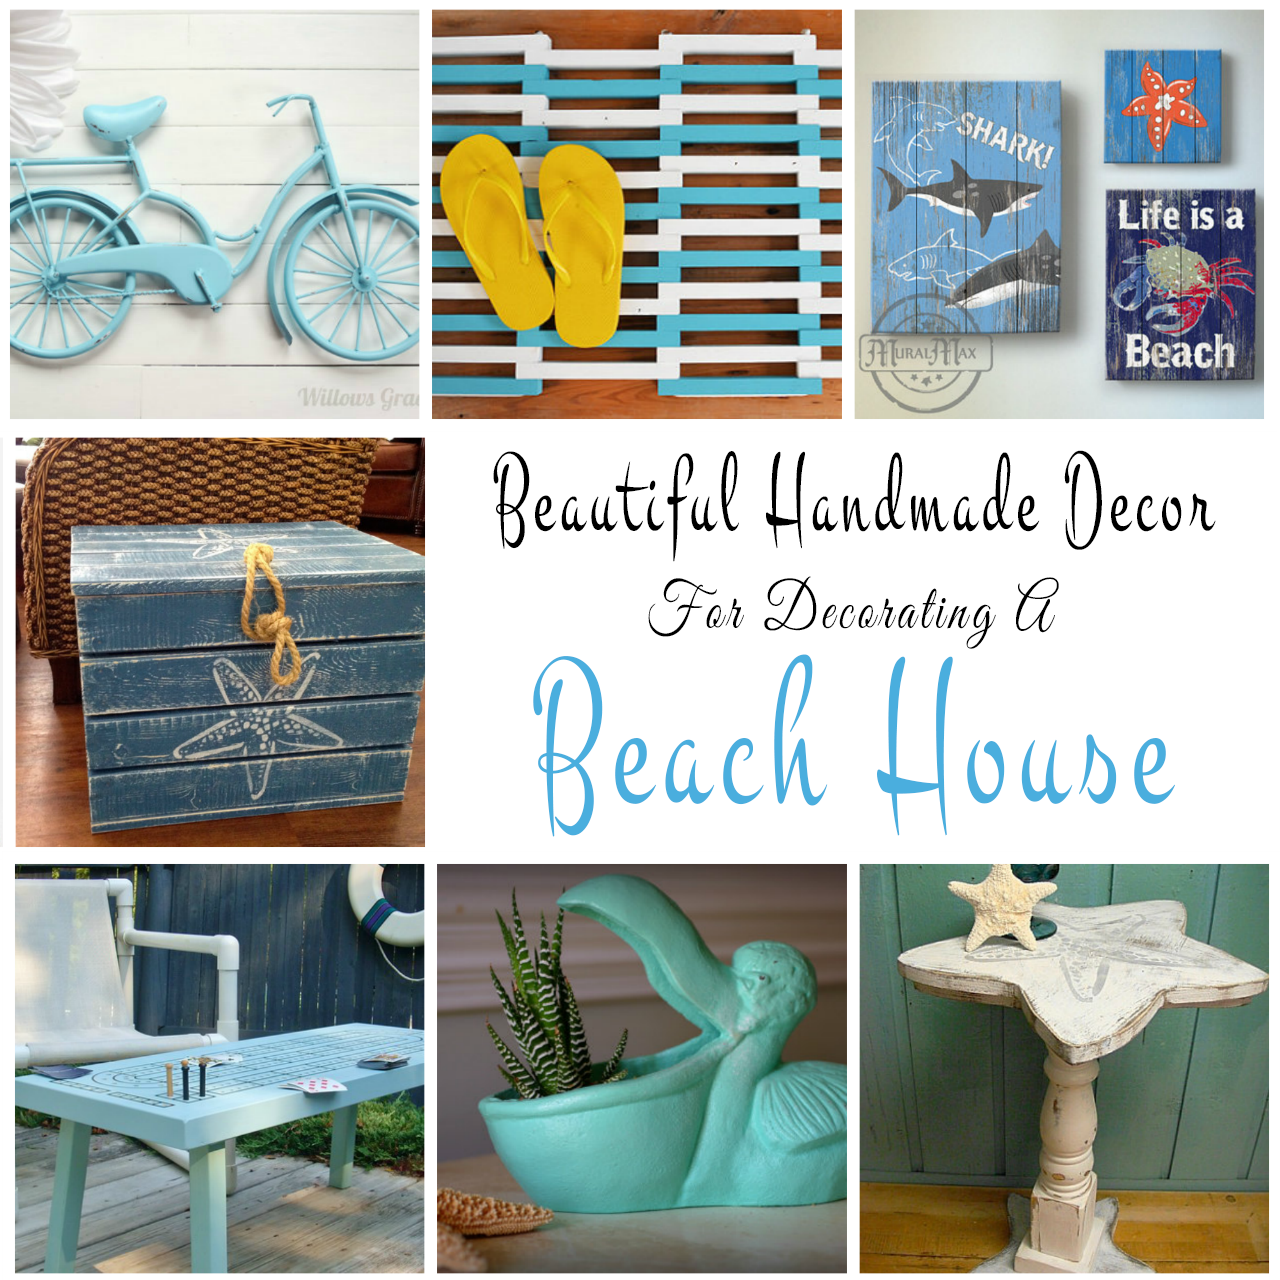 handmade decor ideas for decorating a beach house | glitter 'n spice